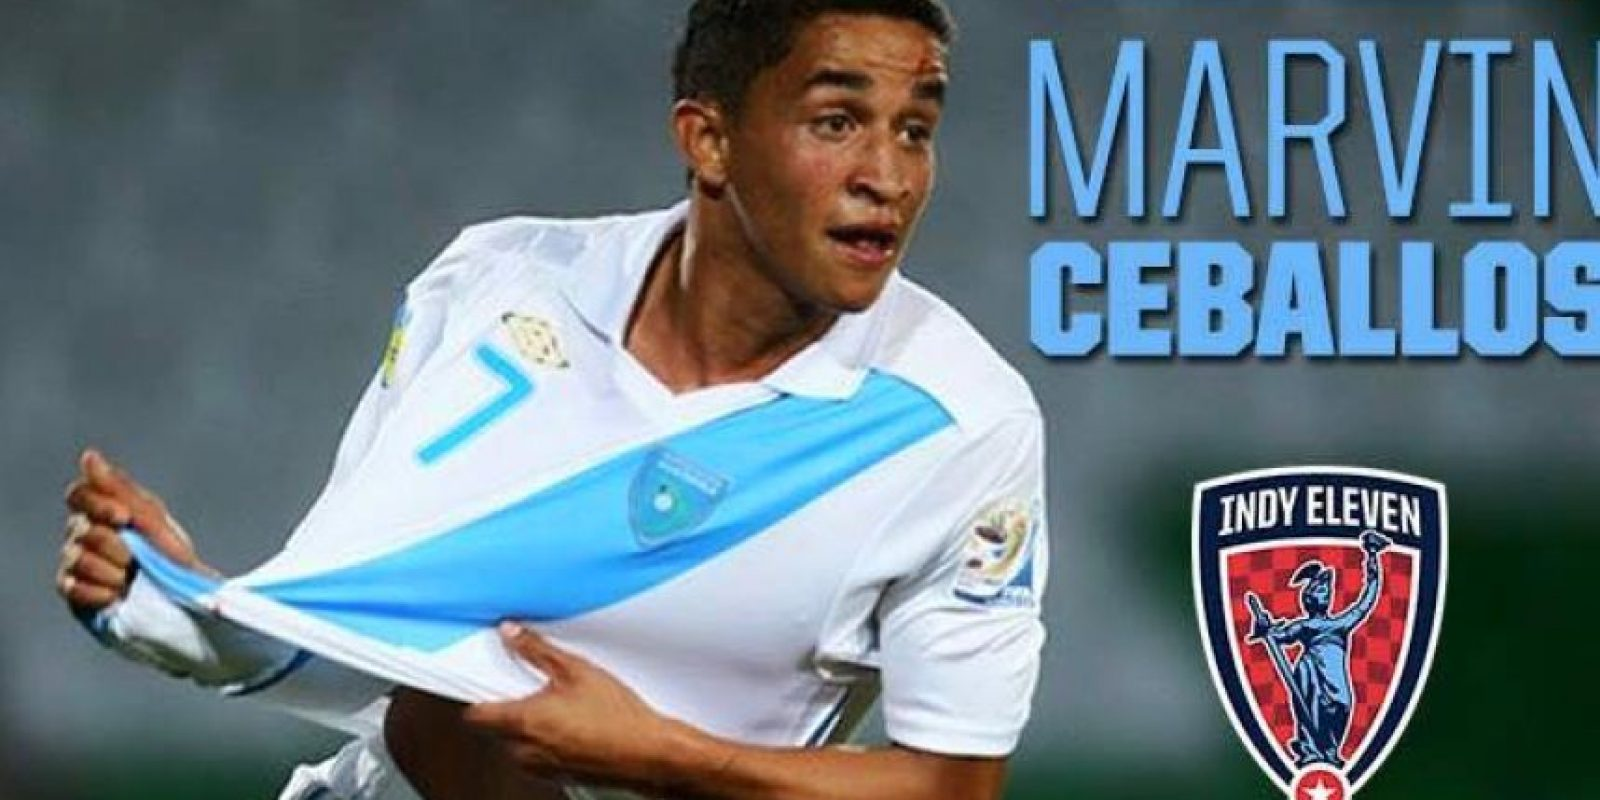 Marvin Ceballos Foto: YouTube